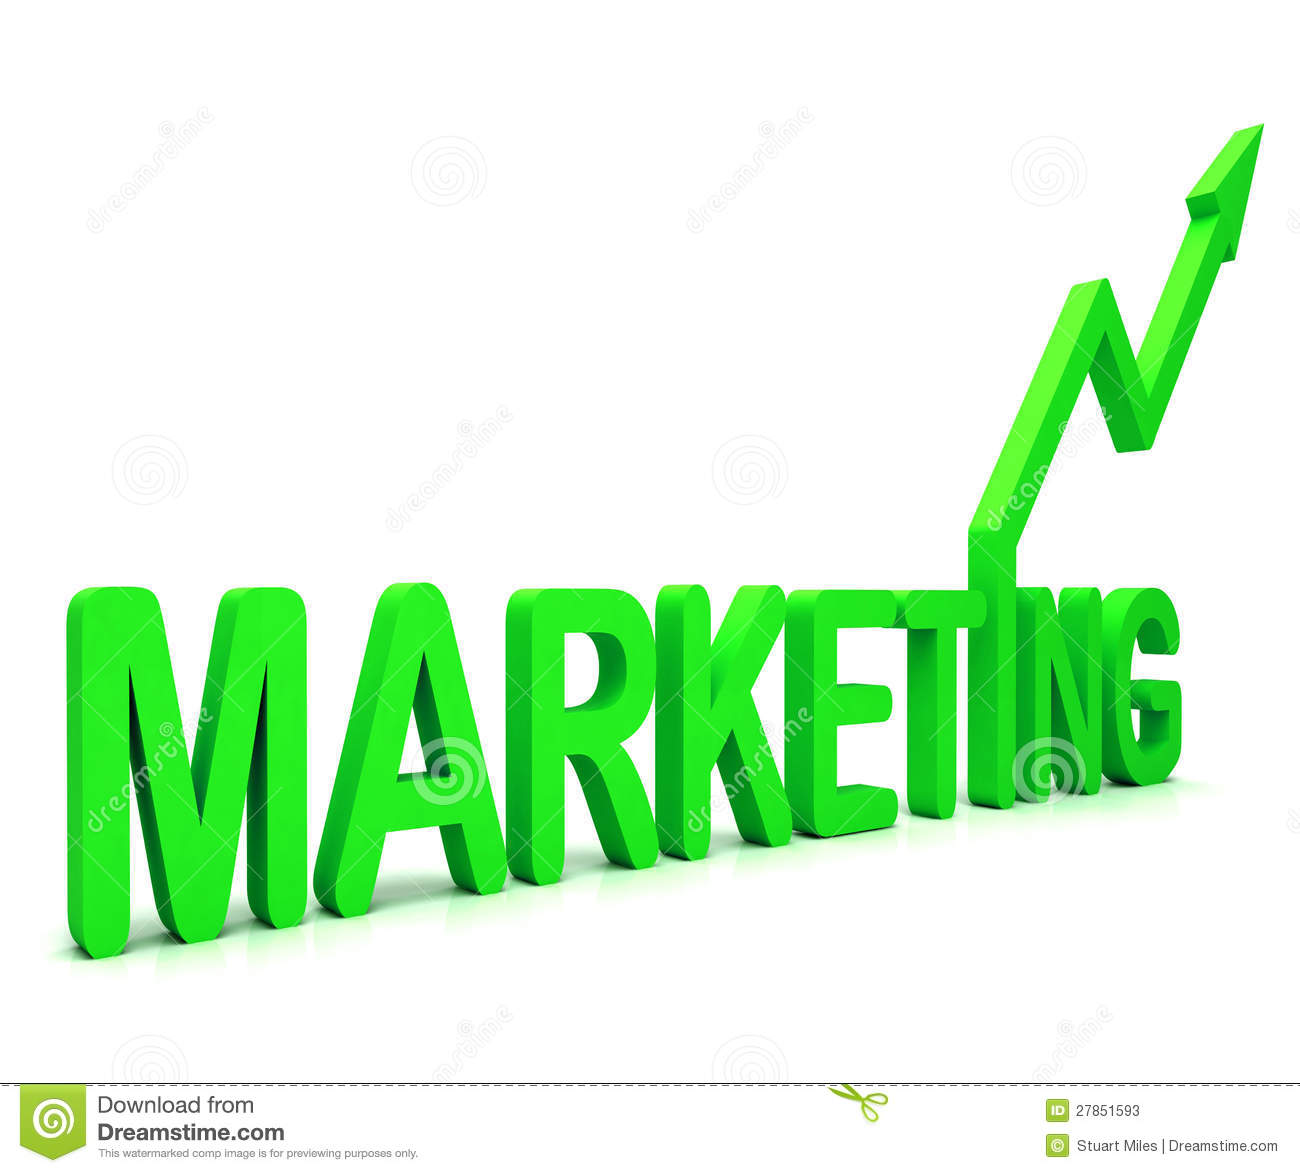 green-marketing-word-means-promotion-sales-advertising-27851593.jpg